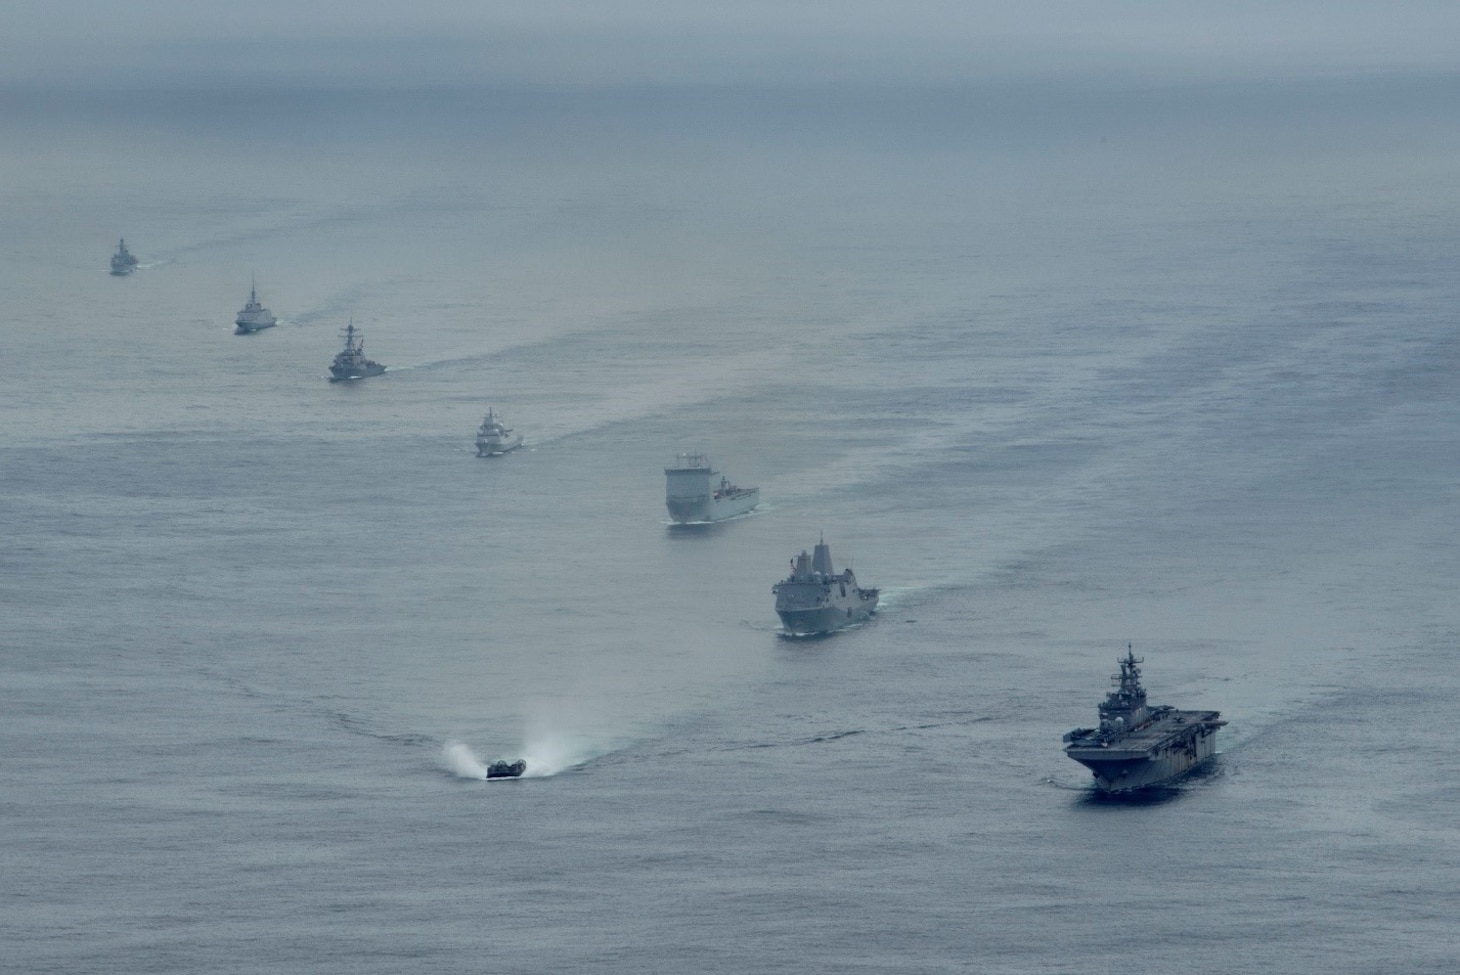 Ships from the U.S. Navy's Iwo Jima Amphibious Ready Group (IWOARG), the Royal Navy's Queen Elizabeth Carrier Strike Group and the French and Norwegian navies transit the Atlantic Ocean in formation during a photo exercise, May 17, 2021.